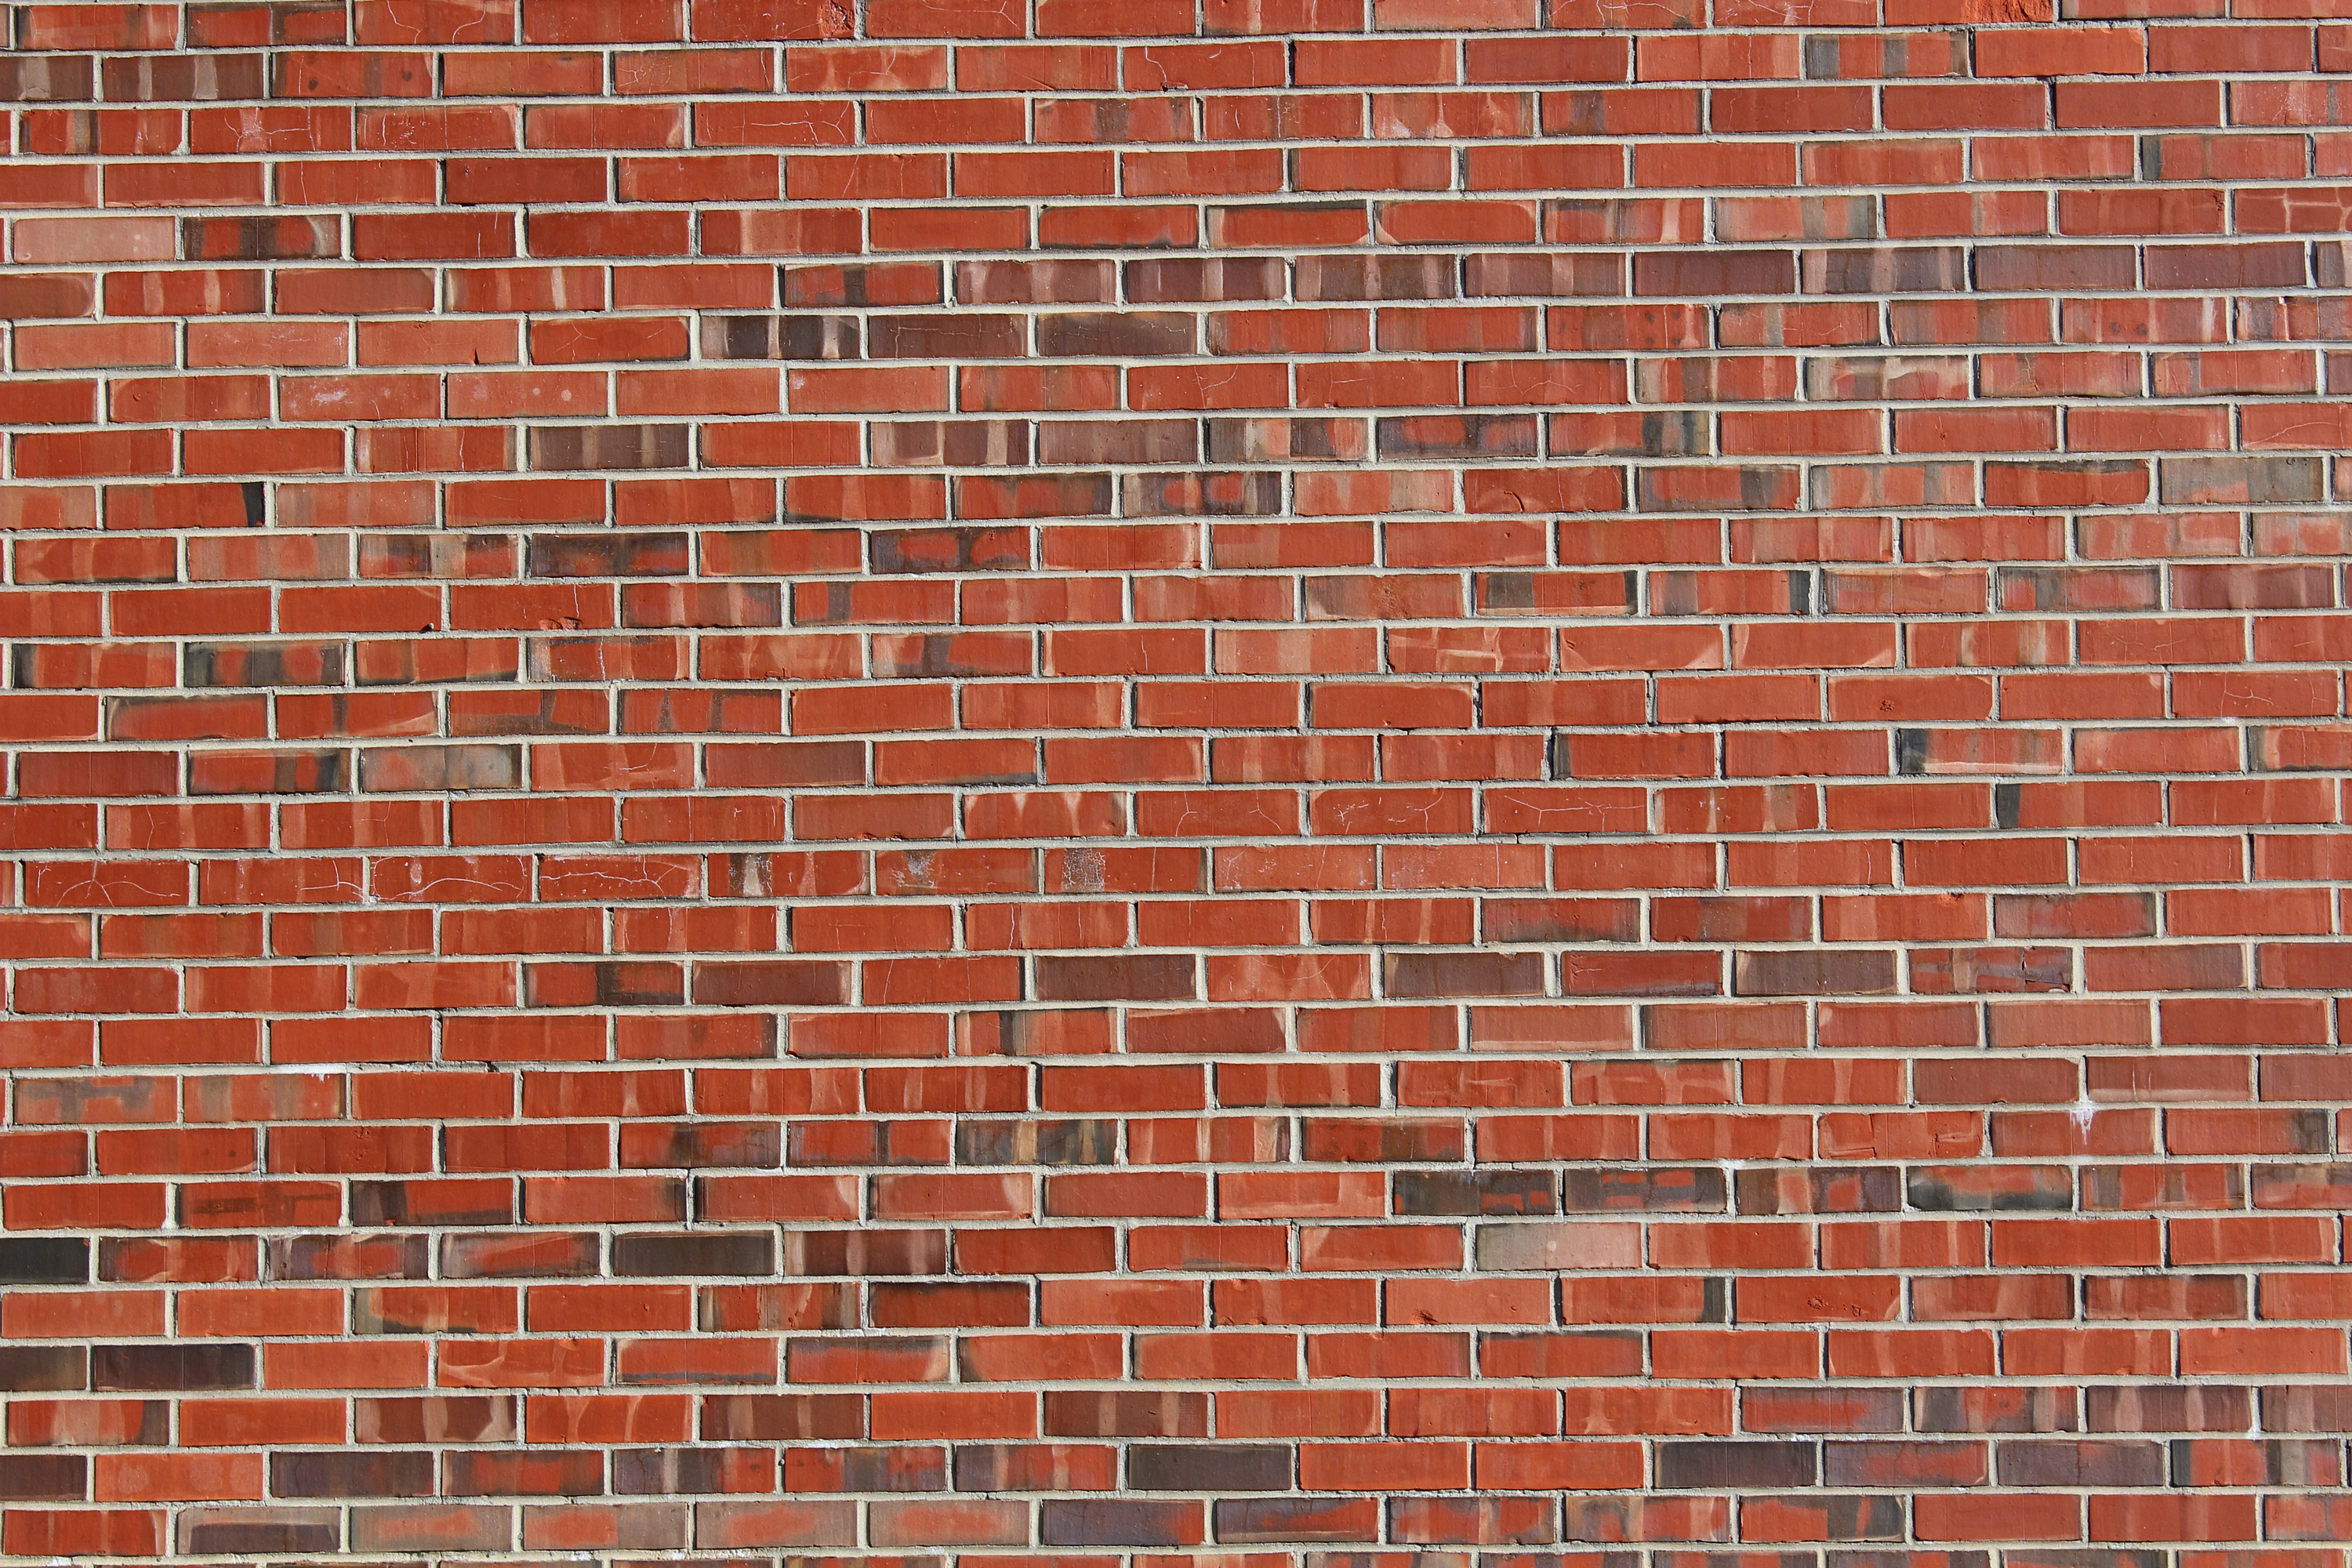 Free Brick Wallpaper Cliparts, Download Free Clip Art, Free.